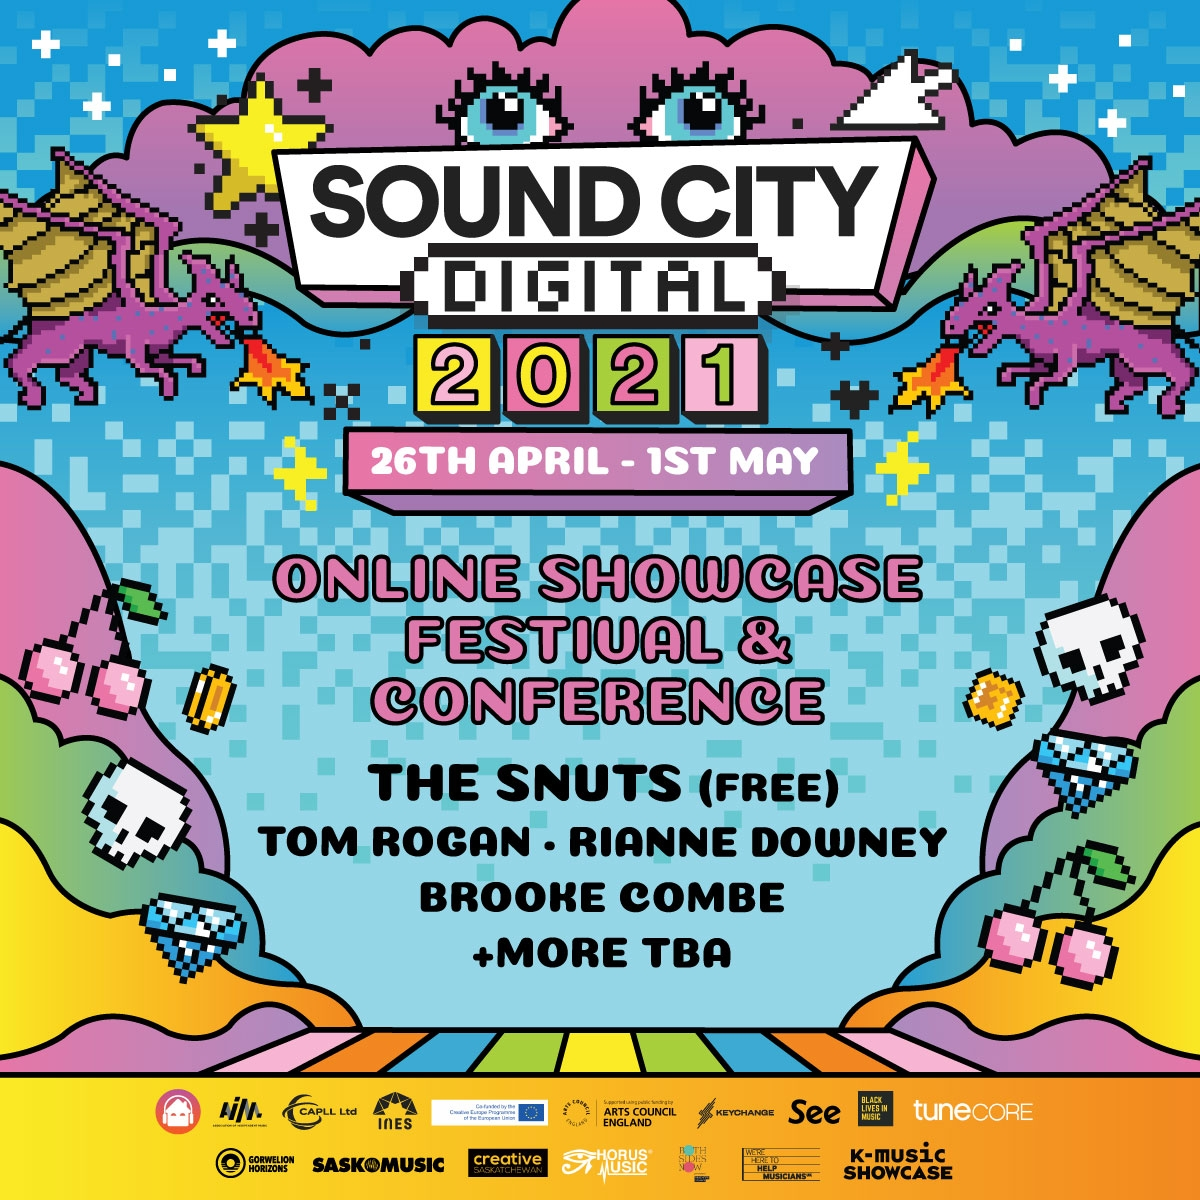 SOUND CITY DIGITAL RETURNS WITH THE SNUTS, RIANNE DOWNEY & MORE